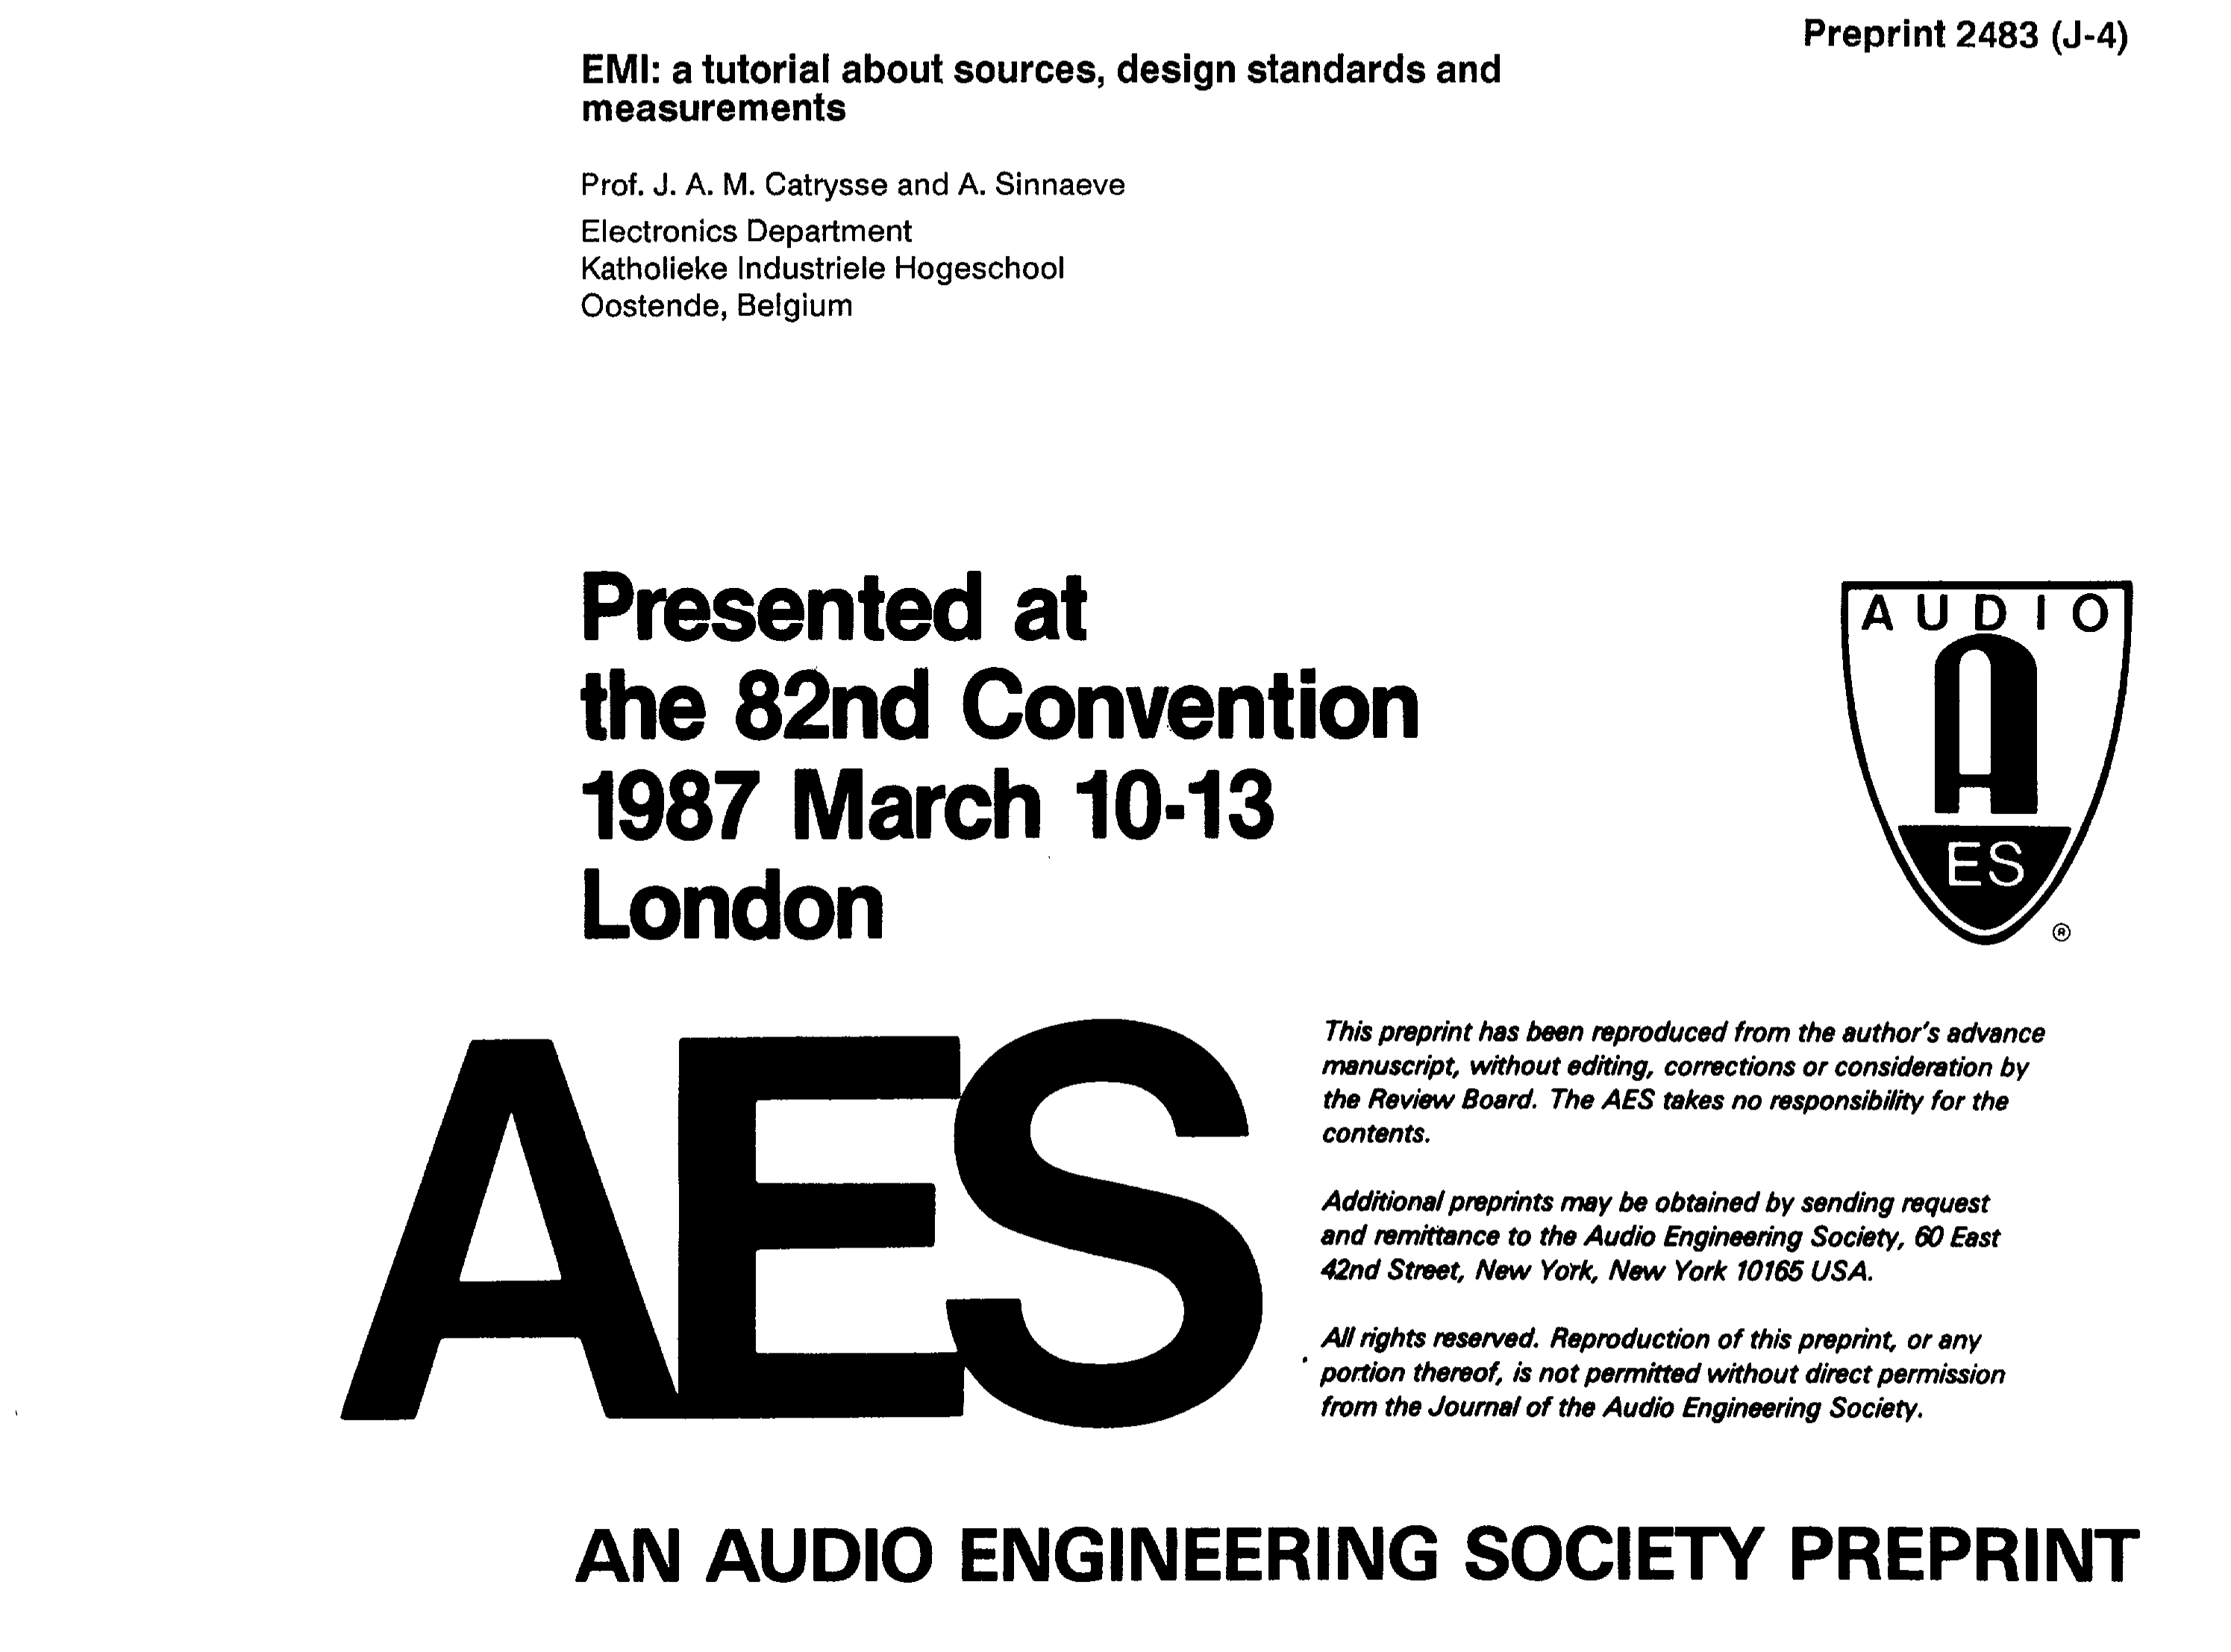 Aes e library emi a tutorial about sources design standards and aes e library emi a tutorial about sources design standards and measurements ccuart Images